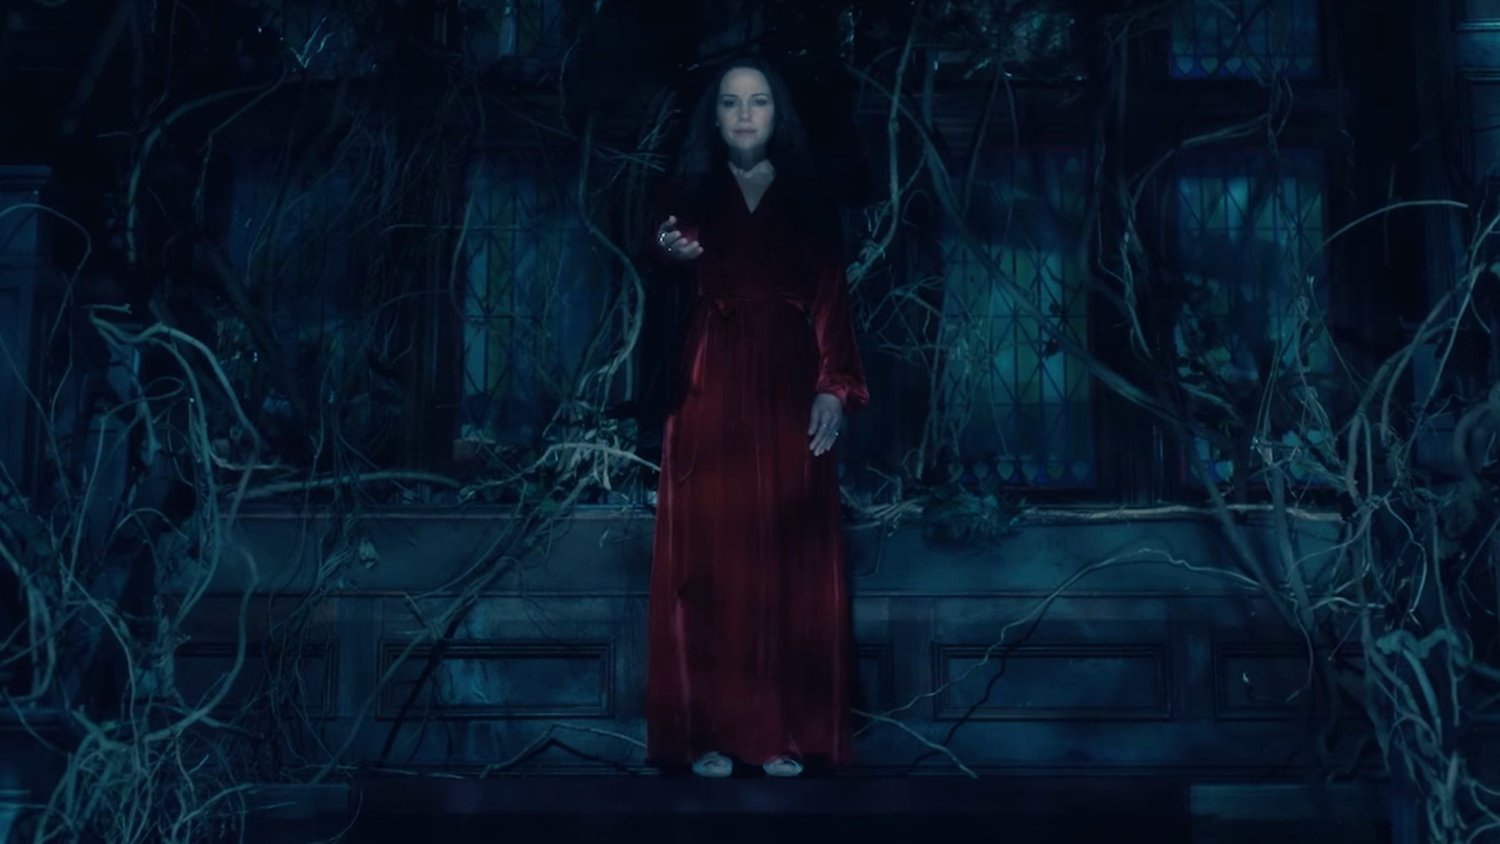 Awesomely Creepy Full Trailer For Netflix S New Horror Series The Haunting Of Hill House Geektyrant